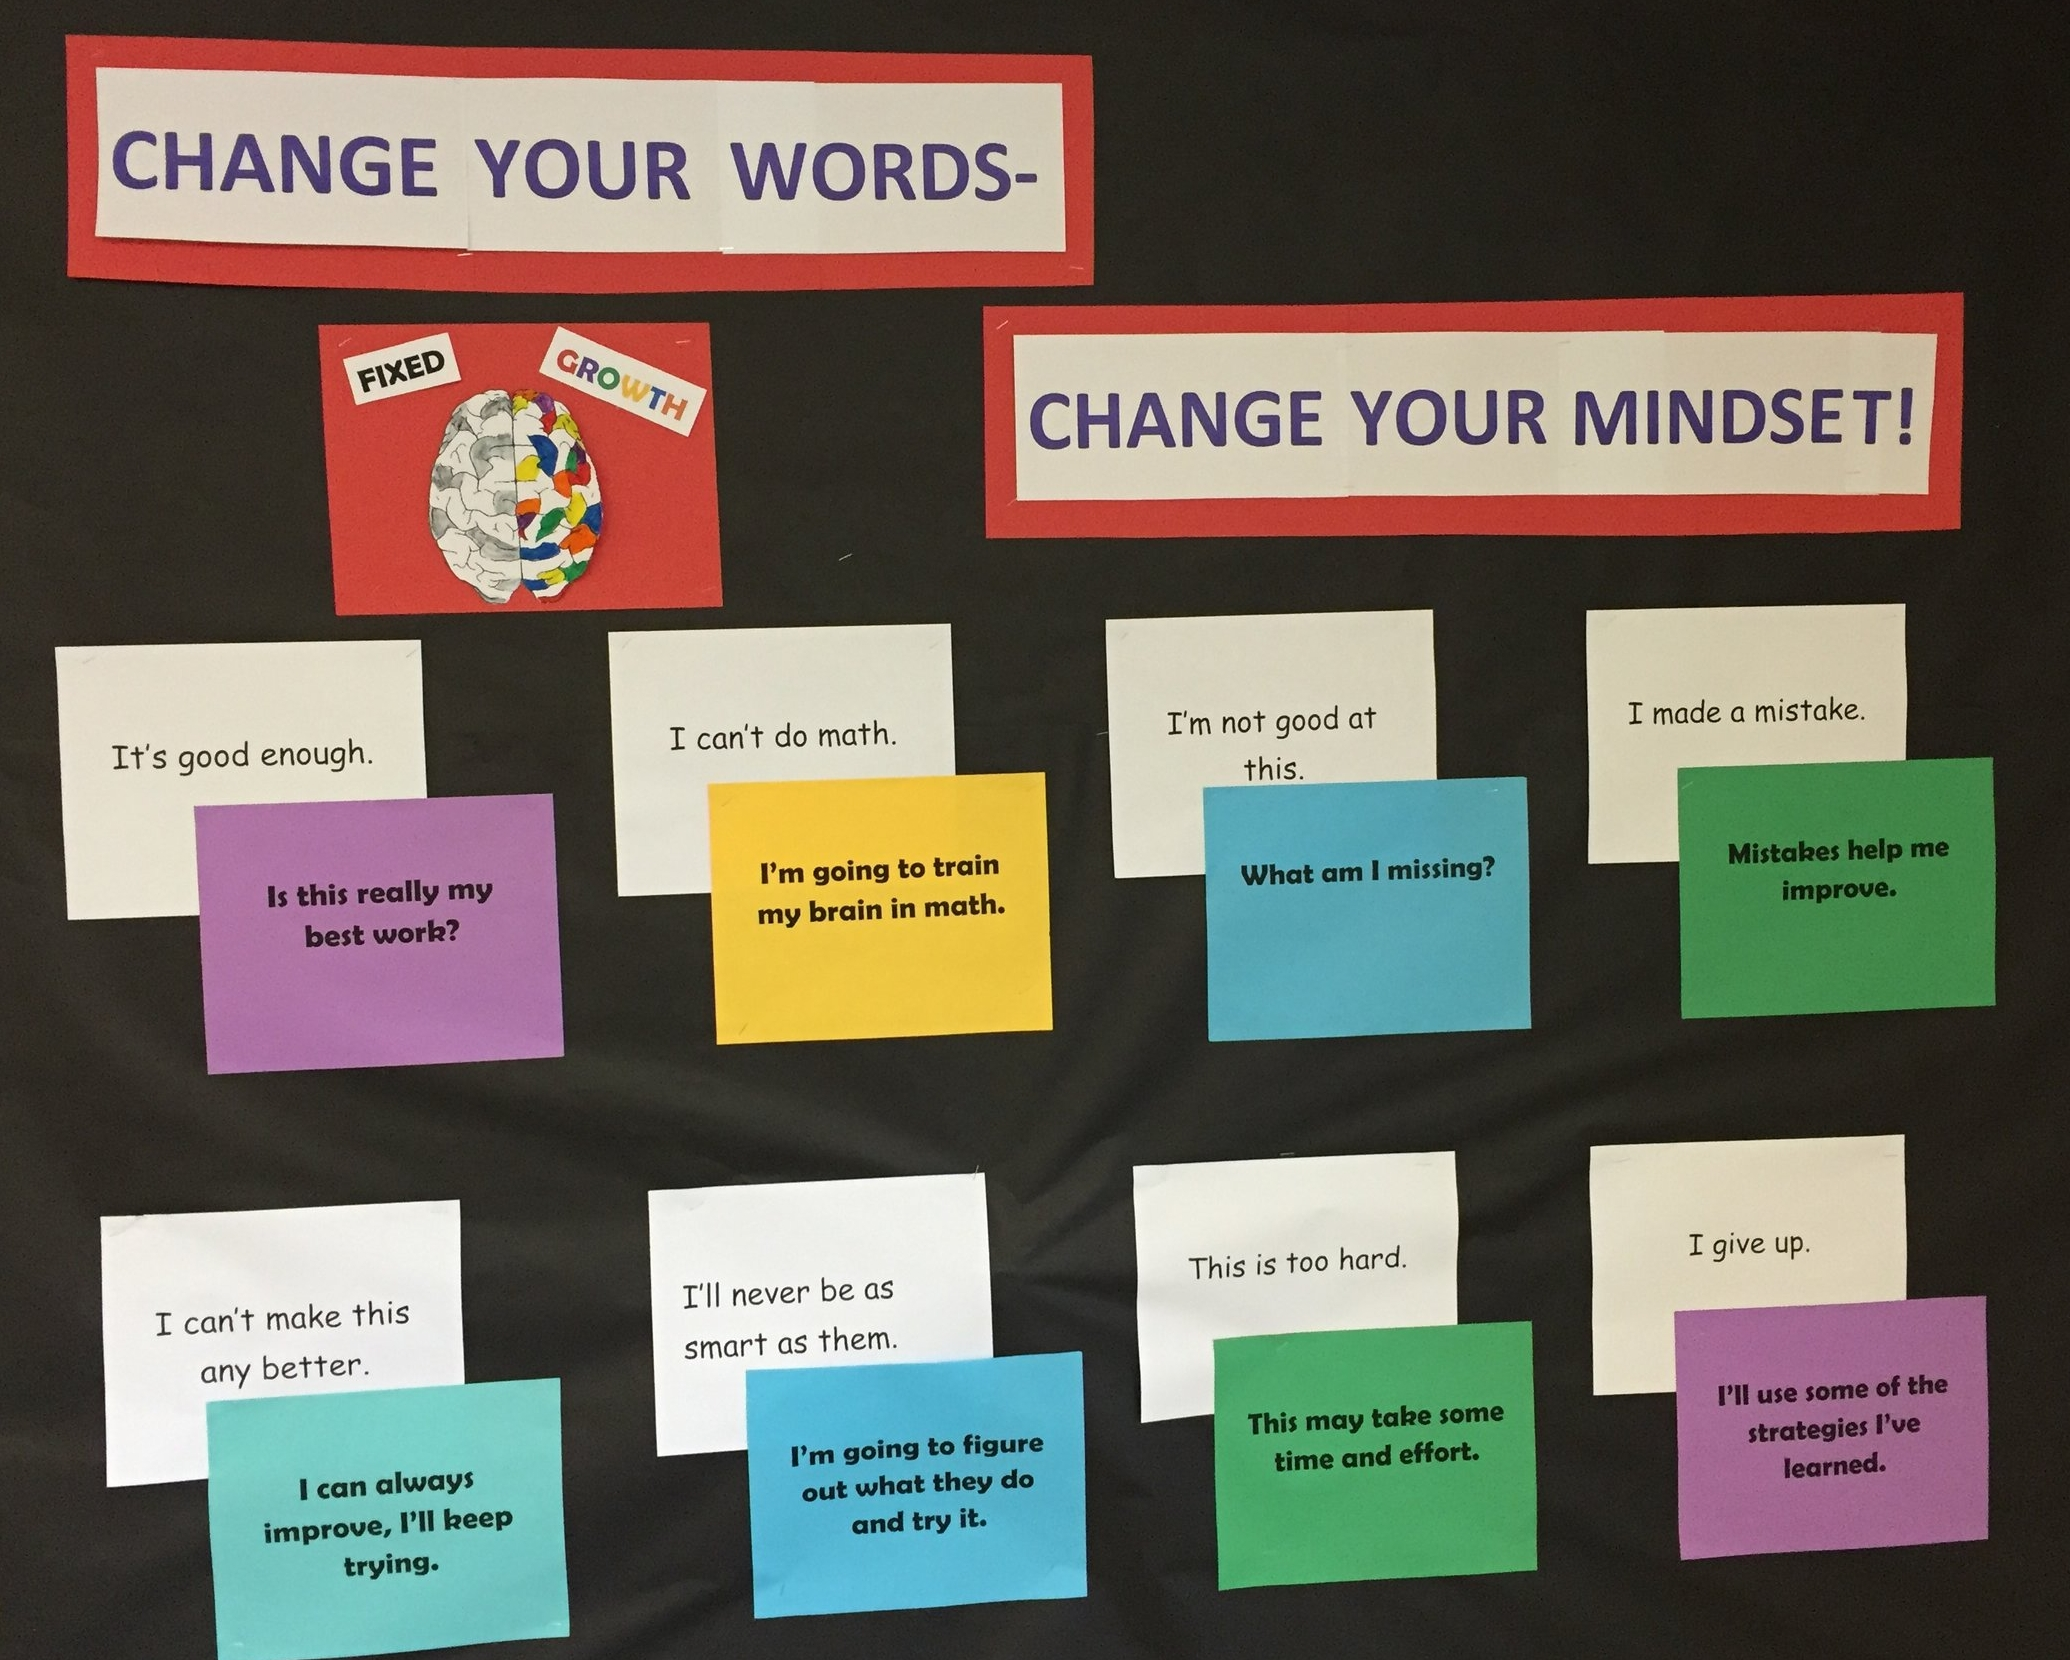 A bulletin board at Ralston Middle School promotes the power of self-talk in cultivating a growth mindset.